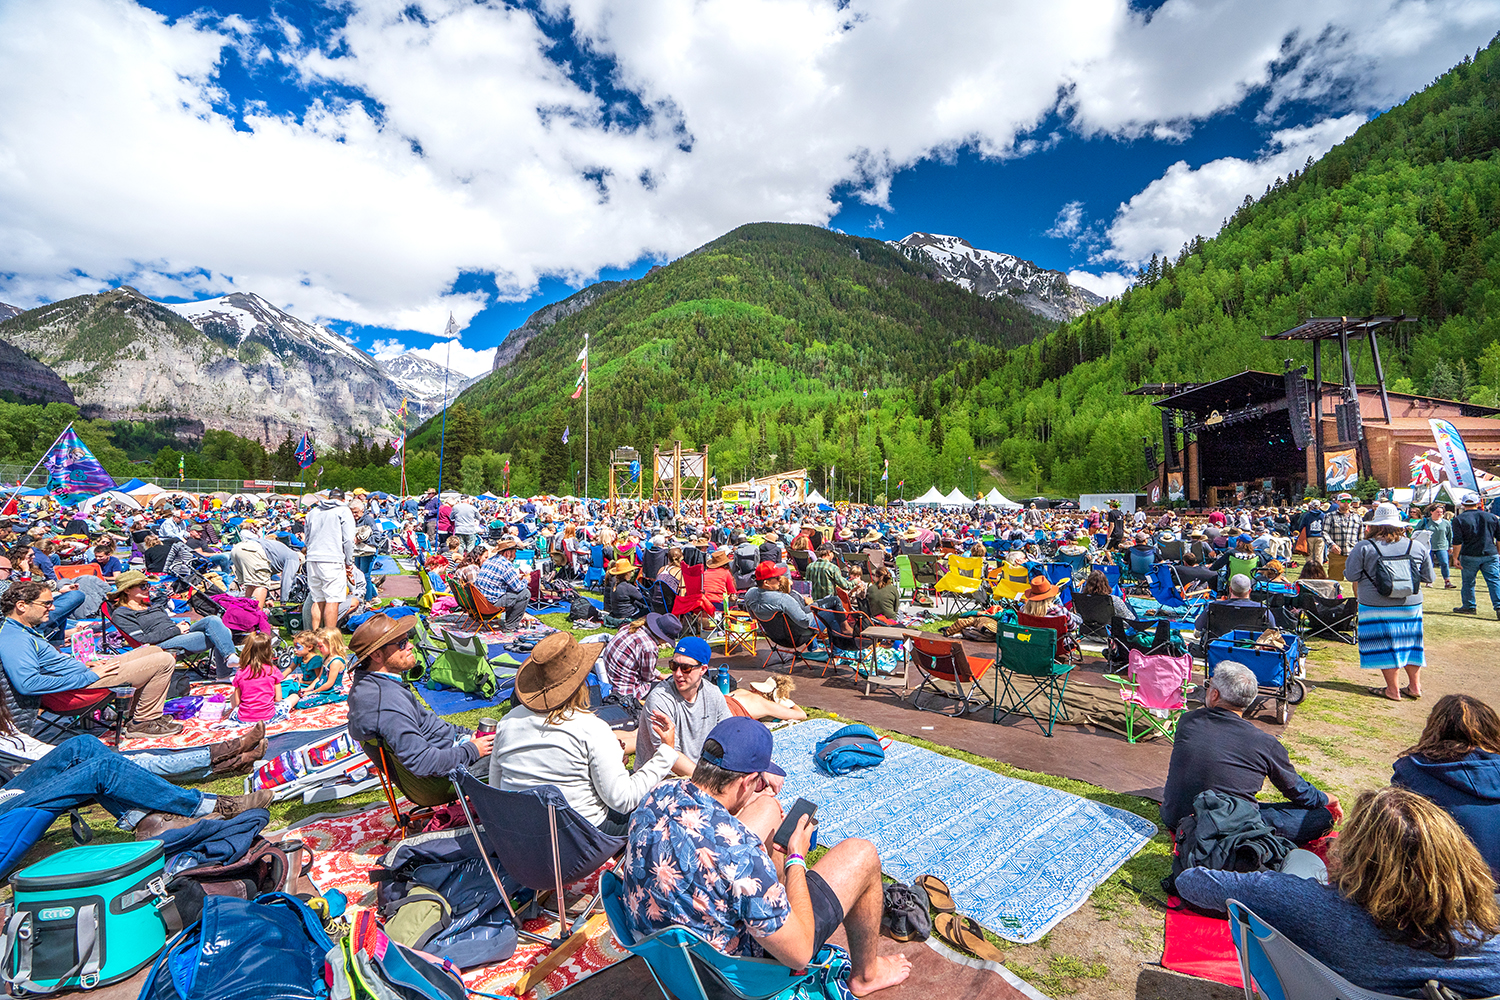 Crowds at the Telluride Bluegrass Festival